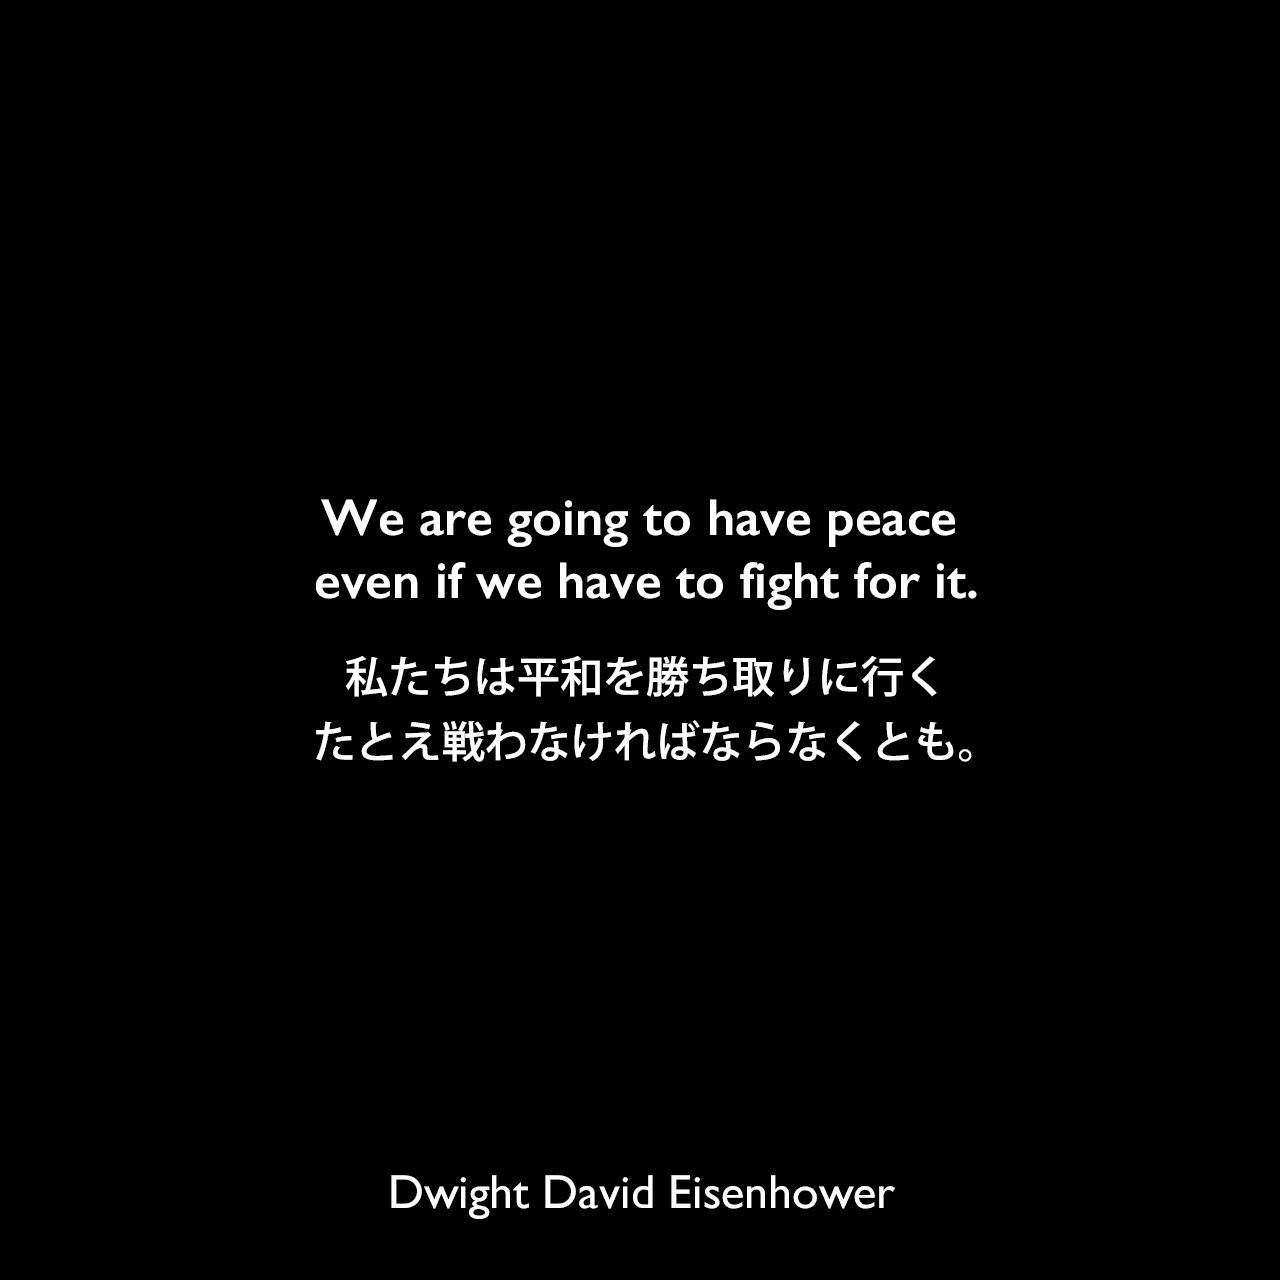 We are going to have peace even if we have to fight for it.私たちは平和を勝ち取りに行く、たとえ戦わなければならなくとも。Dwight David Eisenhower